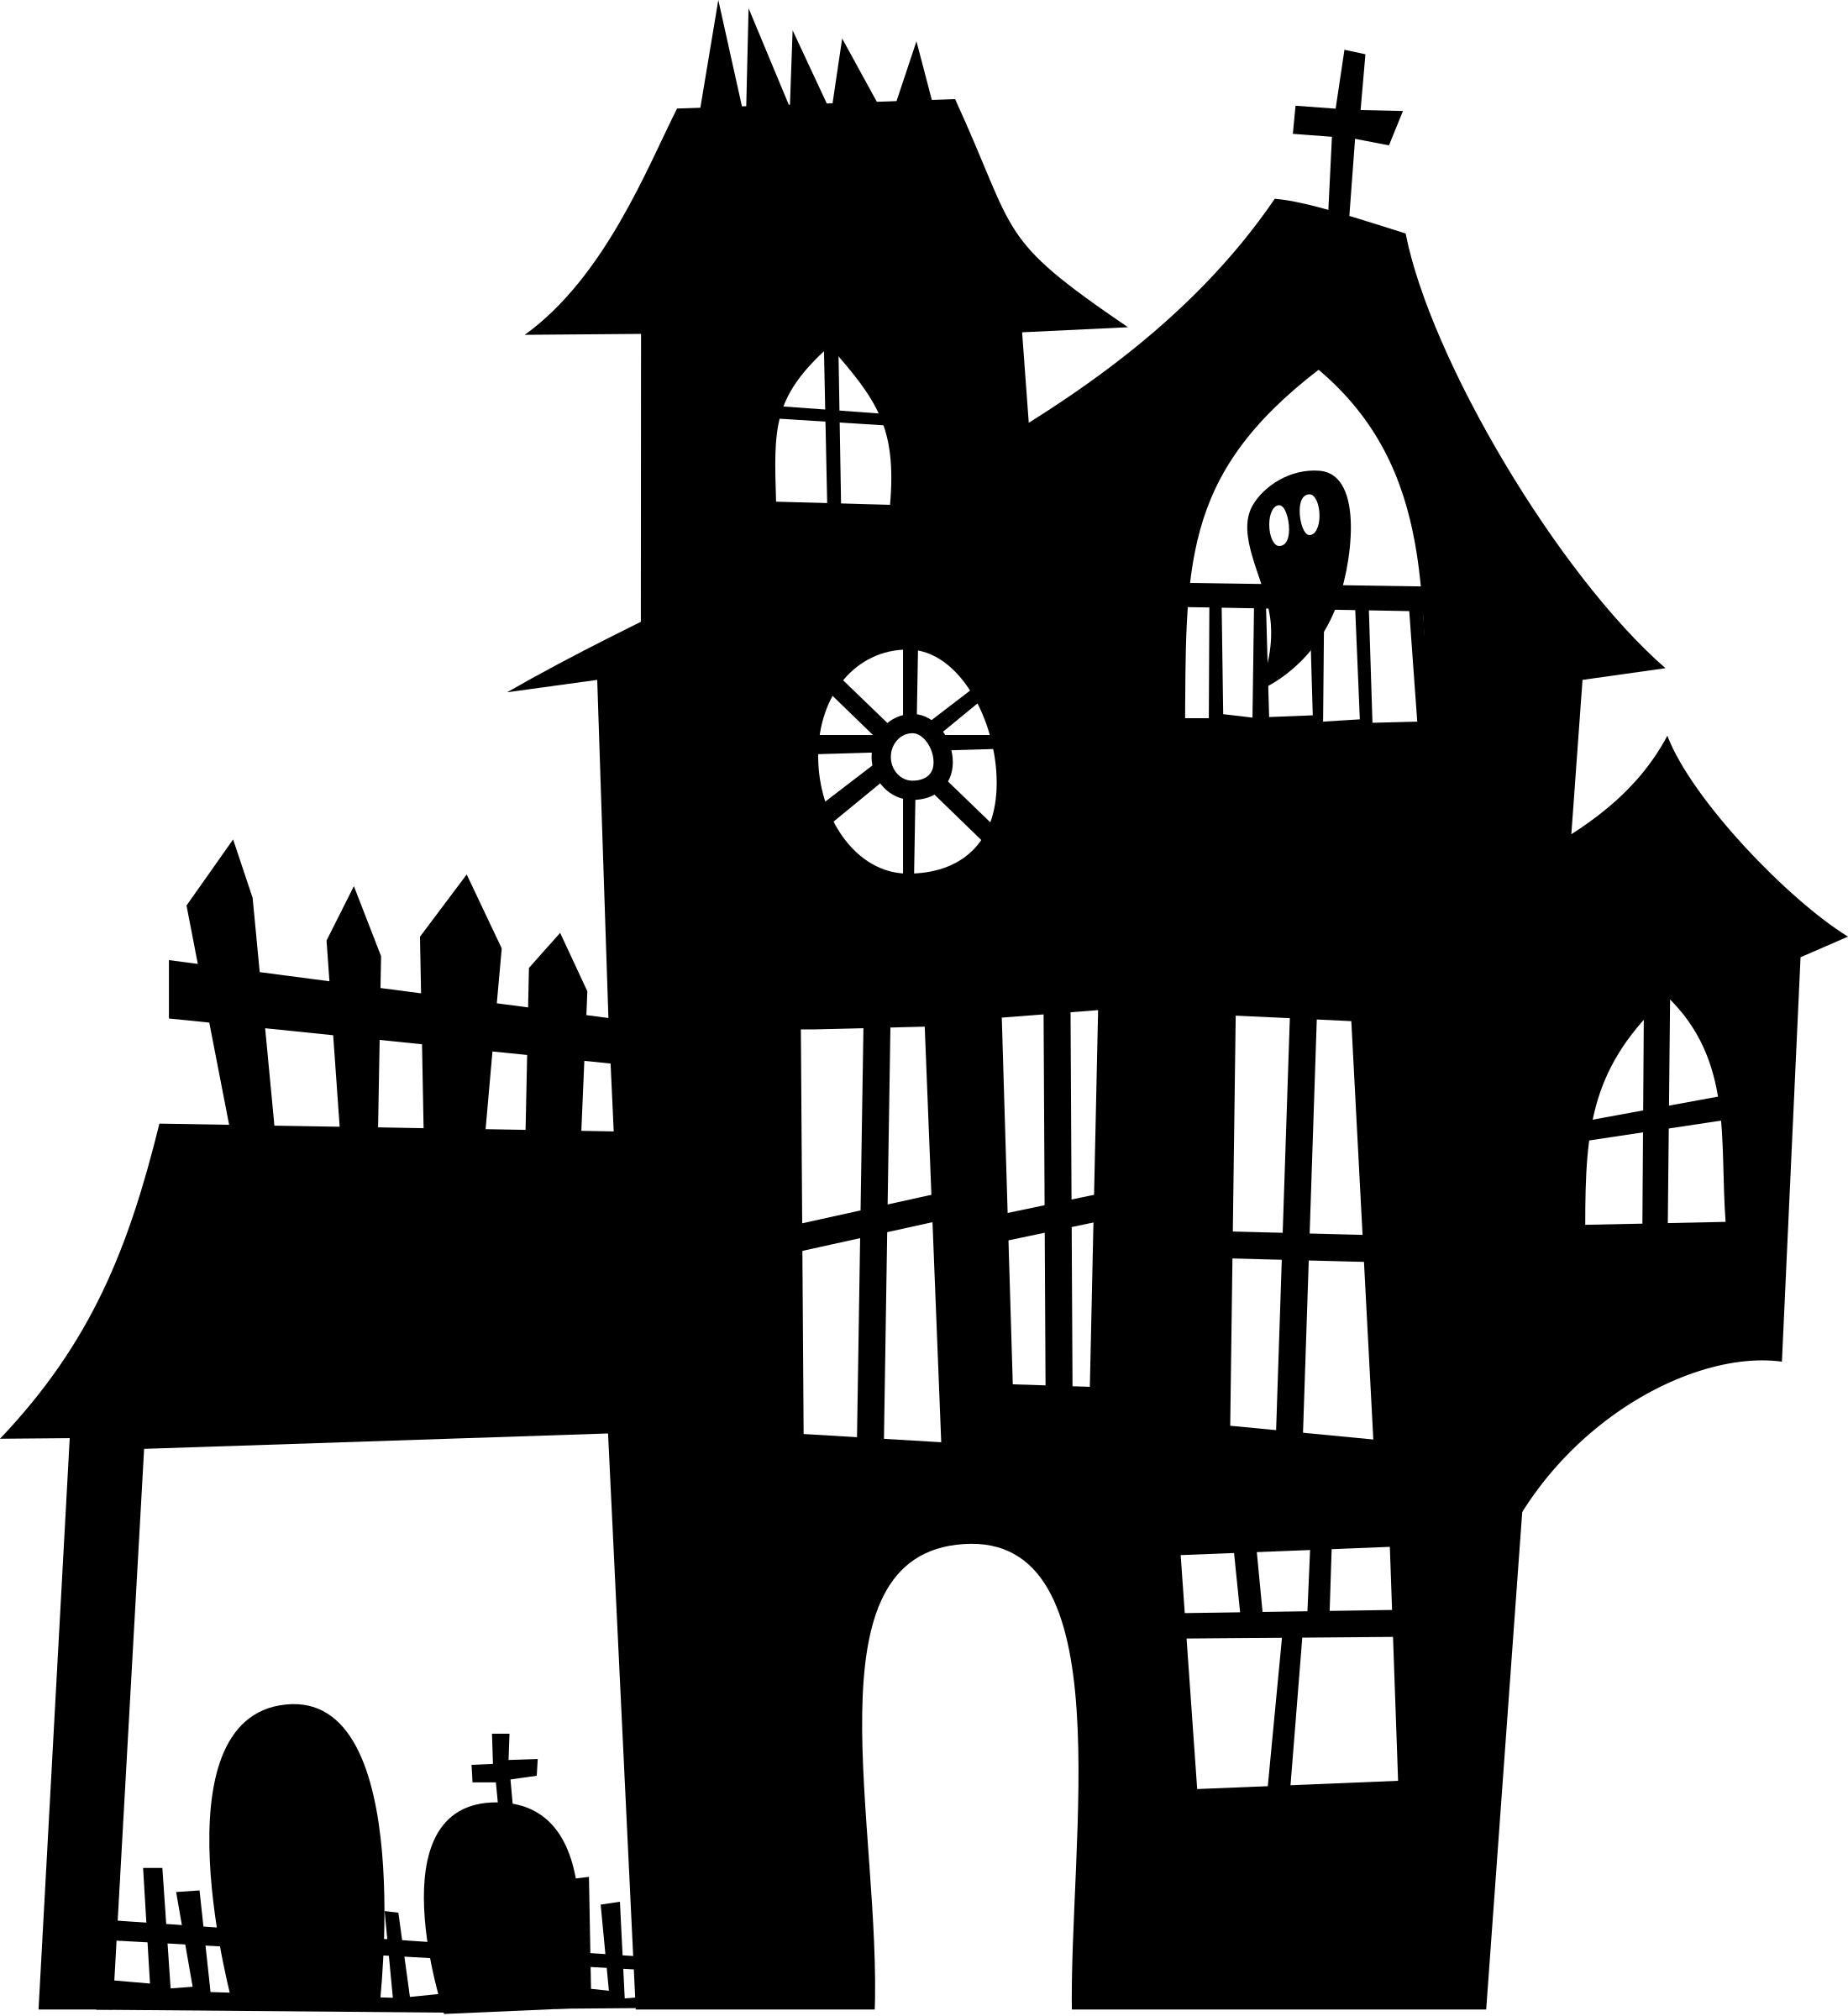 Haunted house silhouette clipart graphic black and white stock 28+ Collection of Haunted Mansion Clipart | High quality, free ... graphic black and white stock